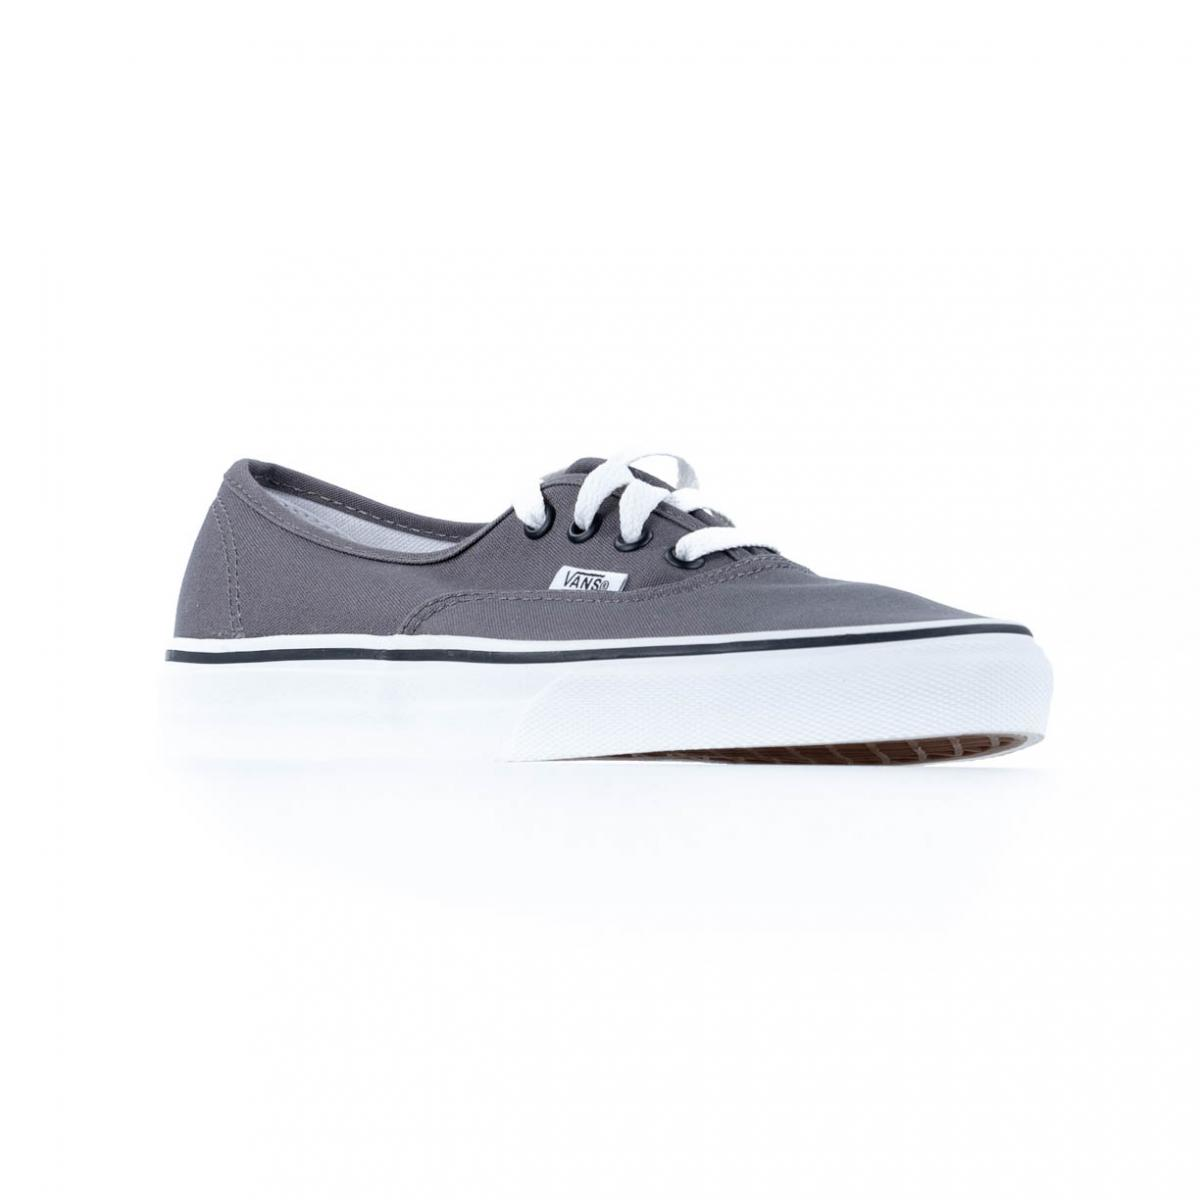 SCARPA UNISEX VANS AUTHENTIC VN-0 JRAPBQ PEWTER/BLACK